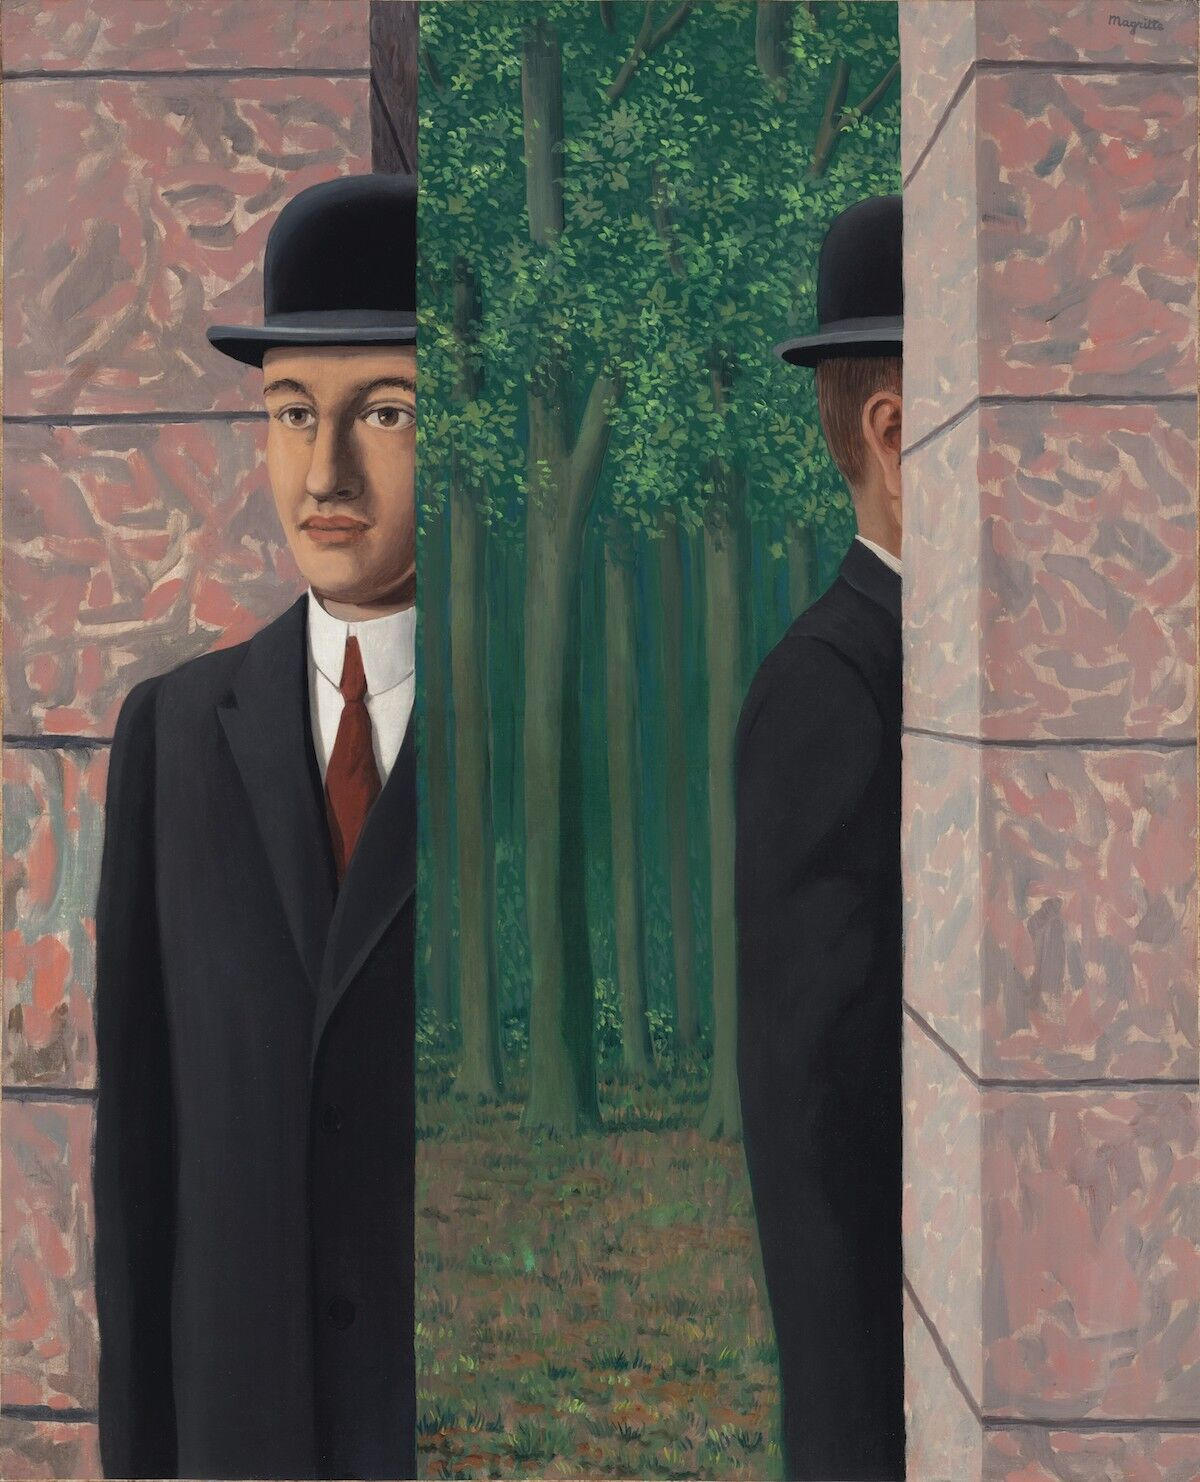 René Magritte, Le Lieu Commun, 1964, est. £15,000,000–25,000,000. Image courtesy Christie's Images Ltd. 2018.